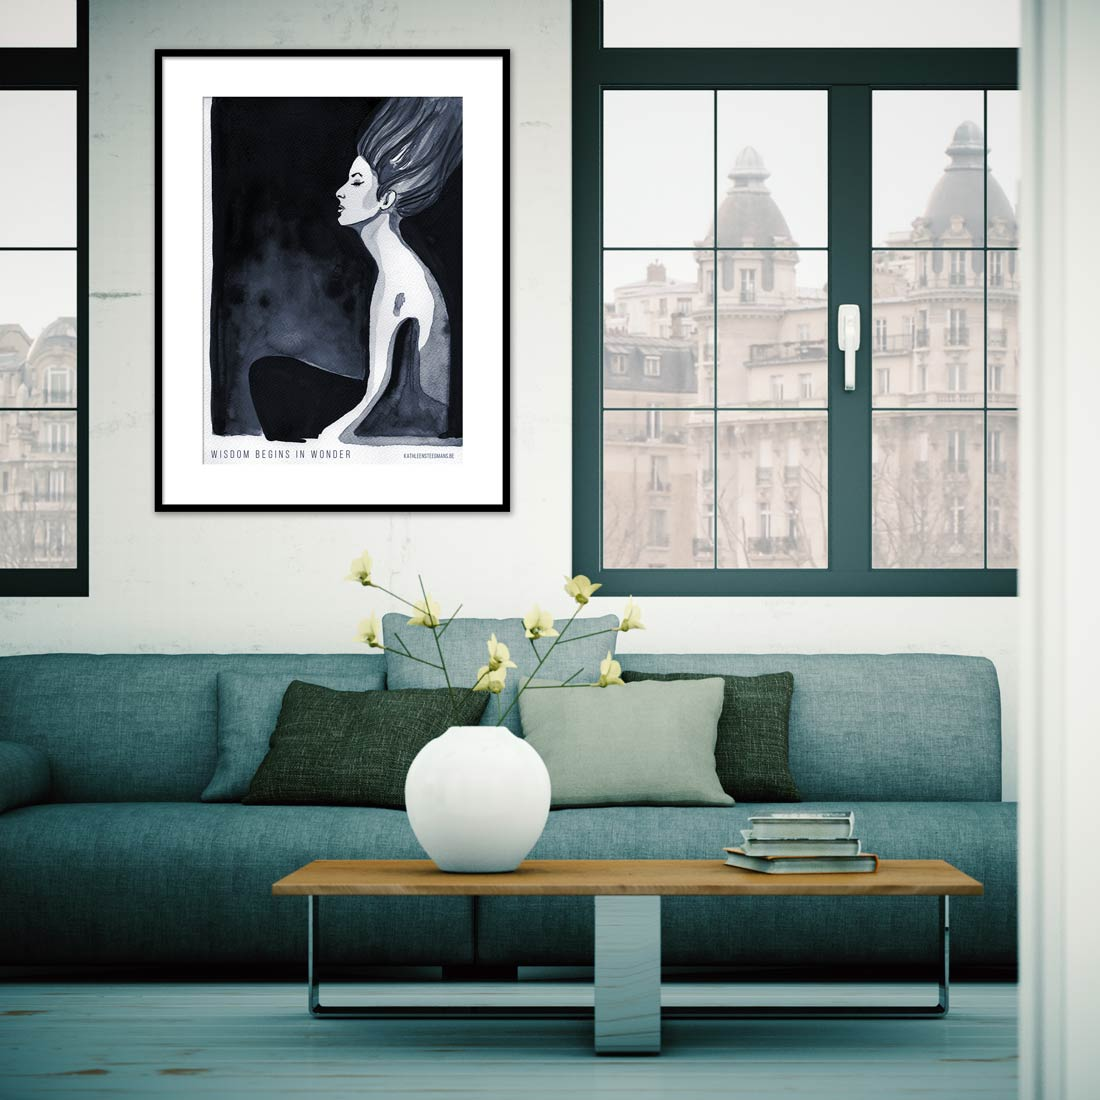 Ink illustration poster in an interior